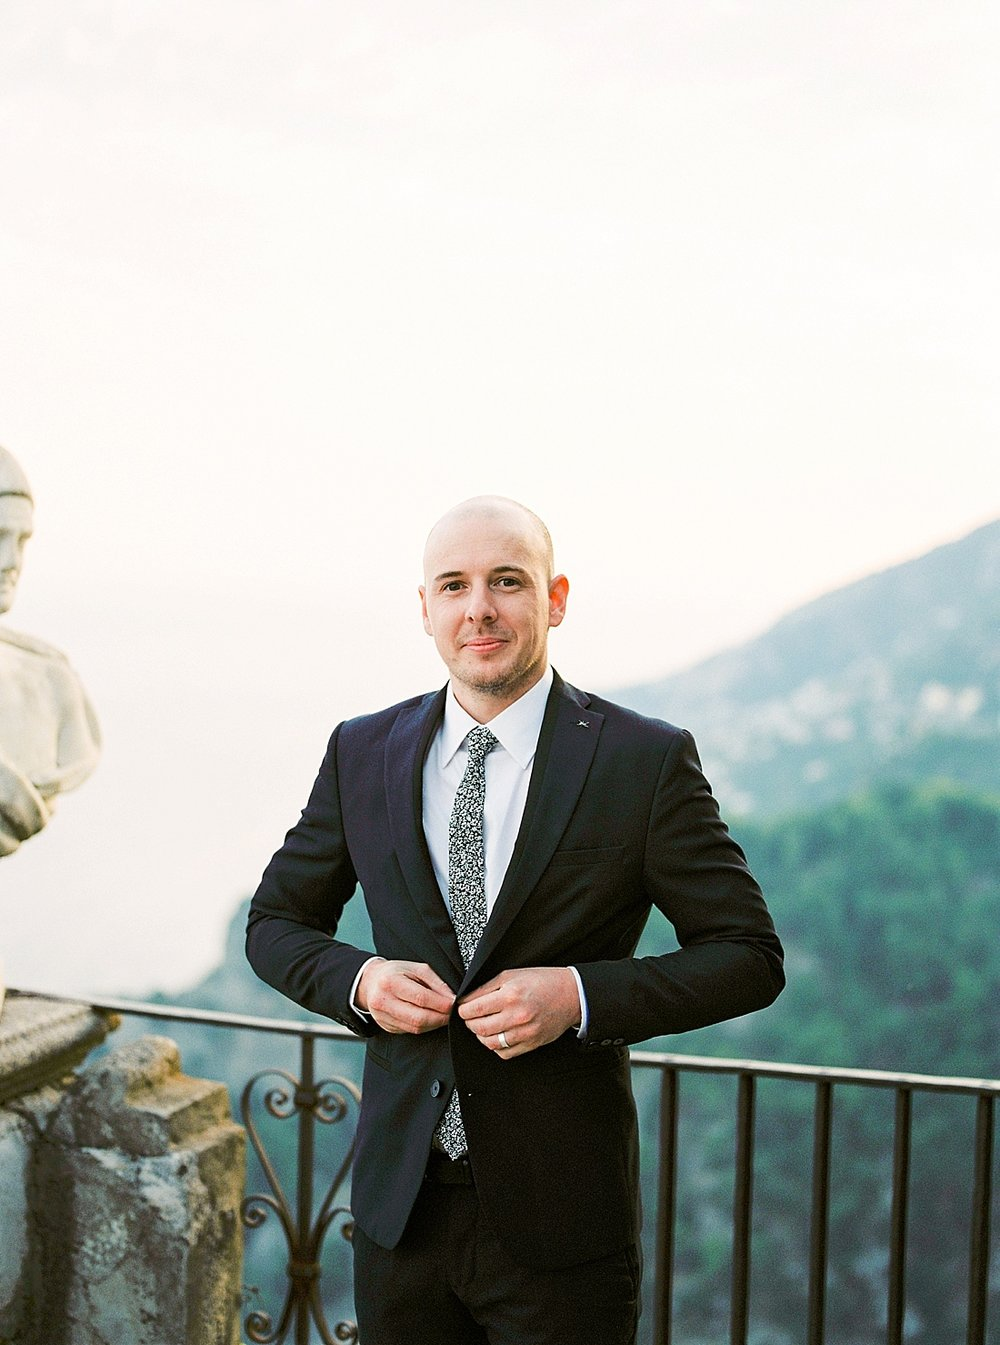 groom in custom trim fit suit in Ravello Italy for their destination elopement at Villa Cimbrone in Ravello, Italy